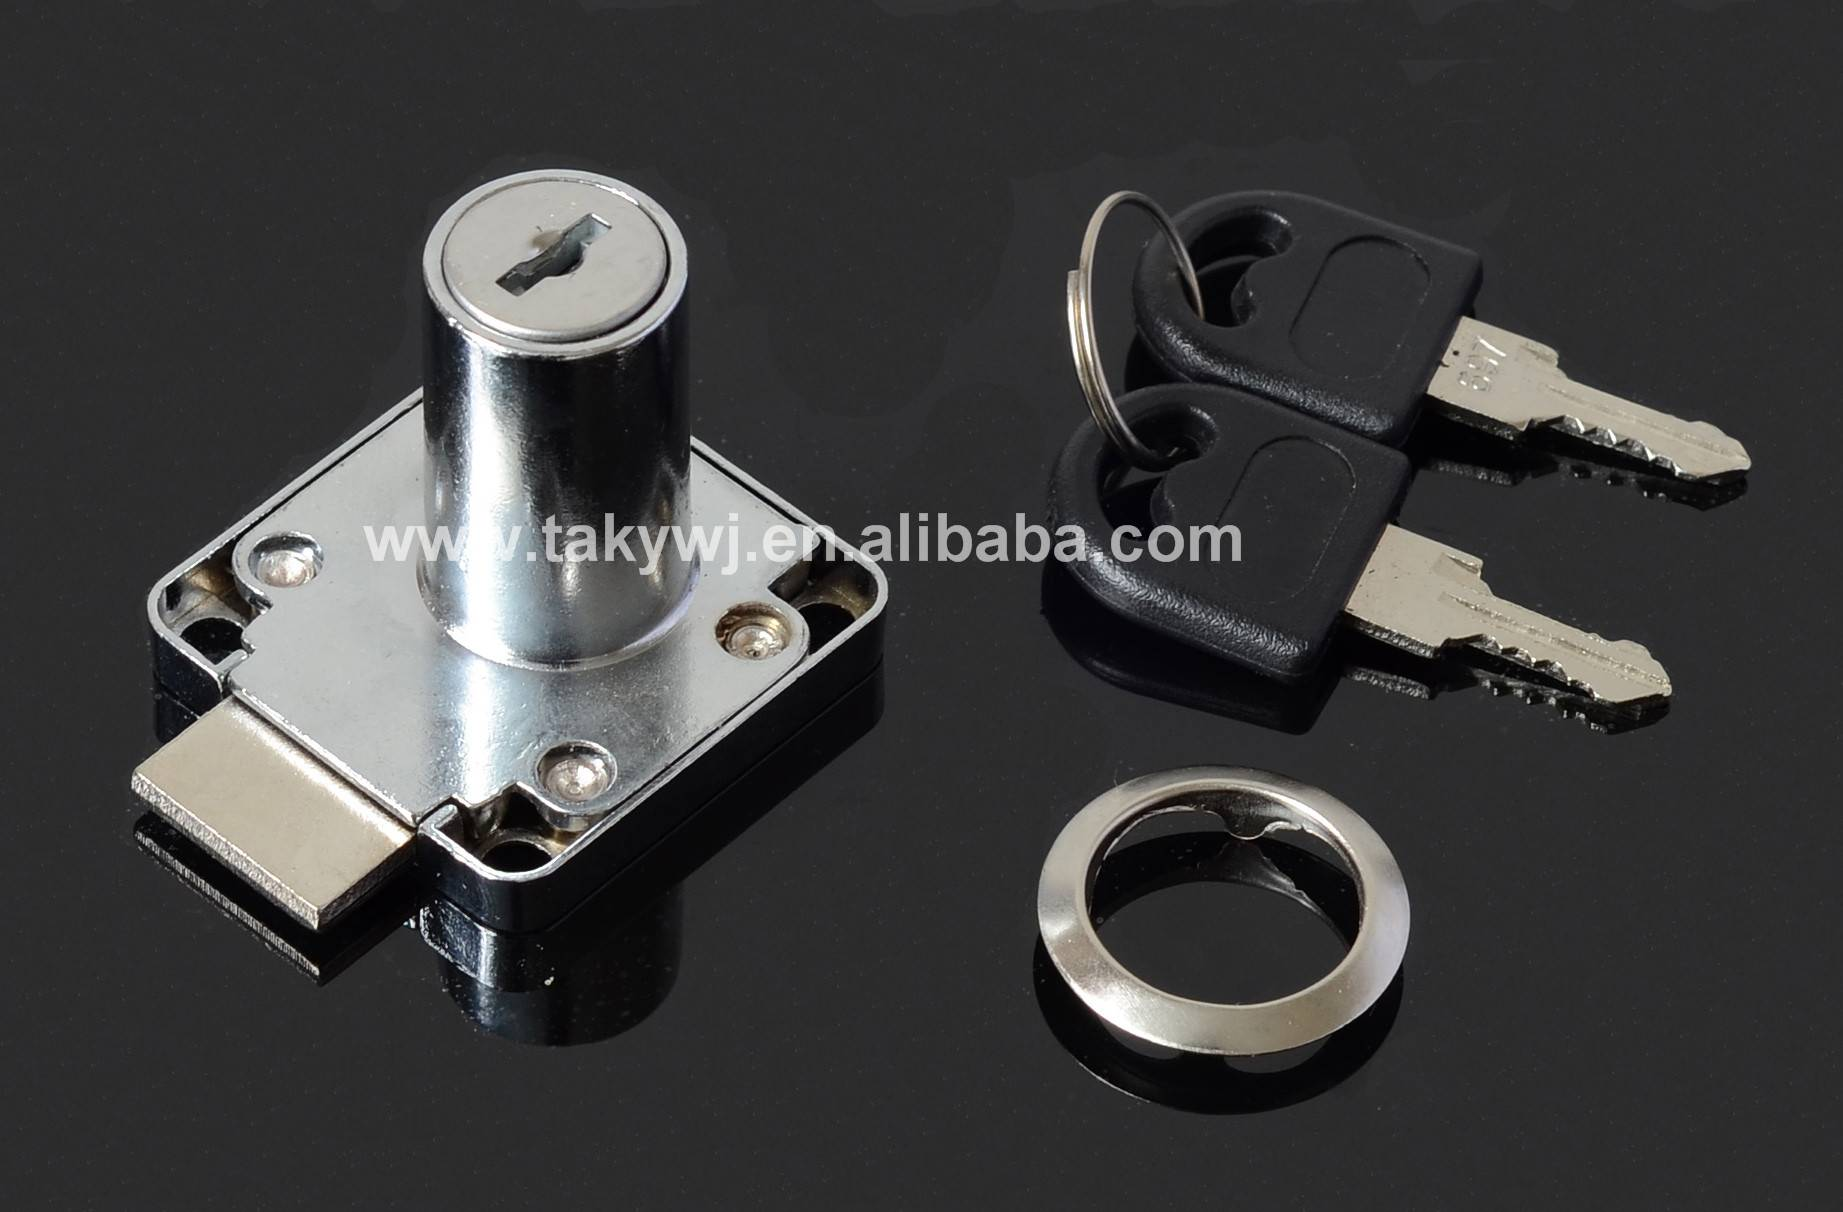 138-22 metal drawer lock for furniture